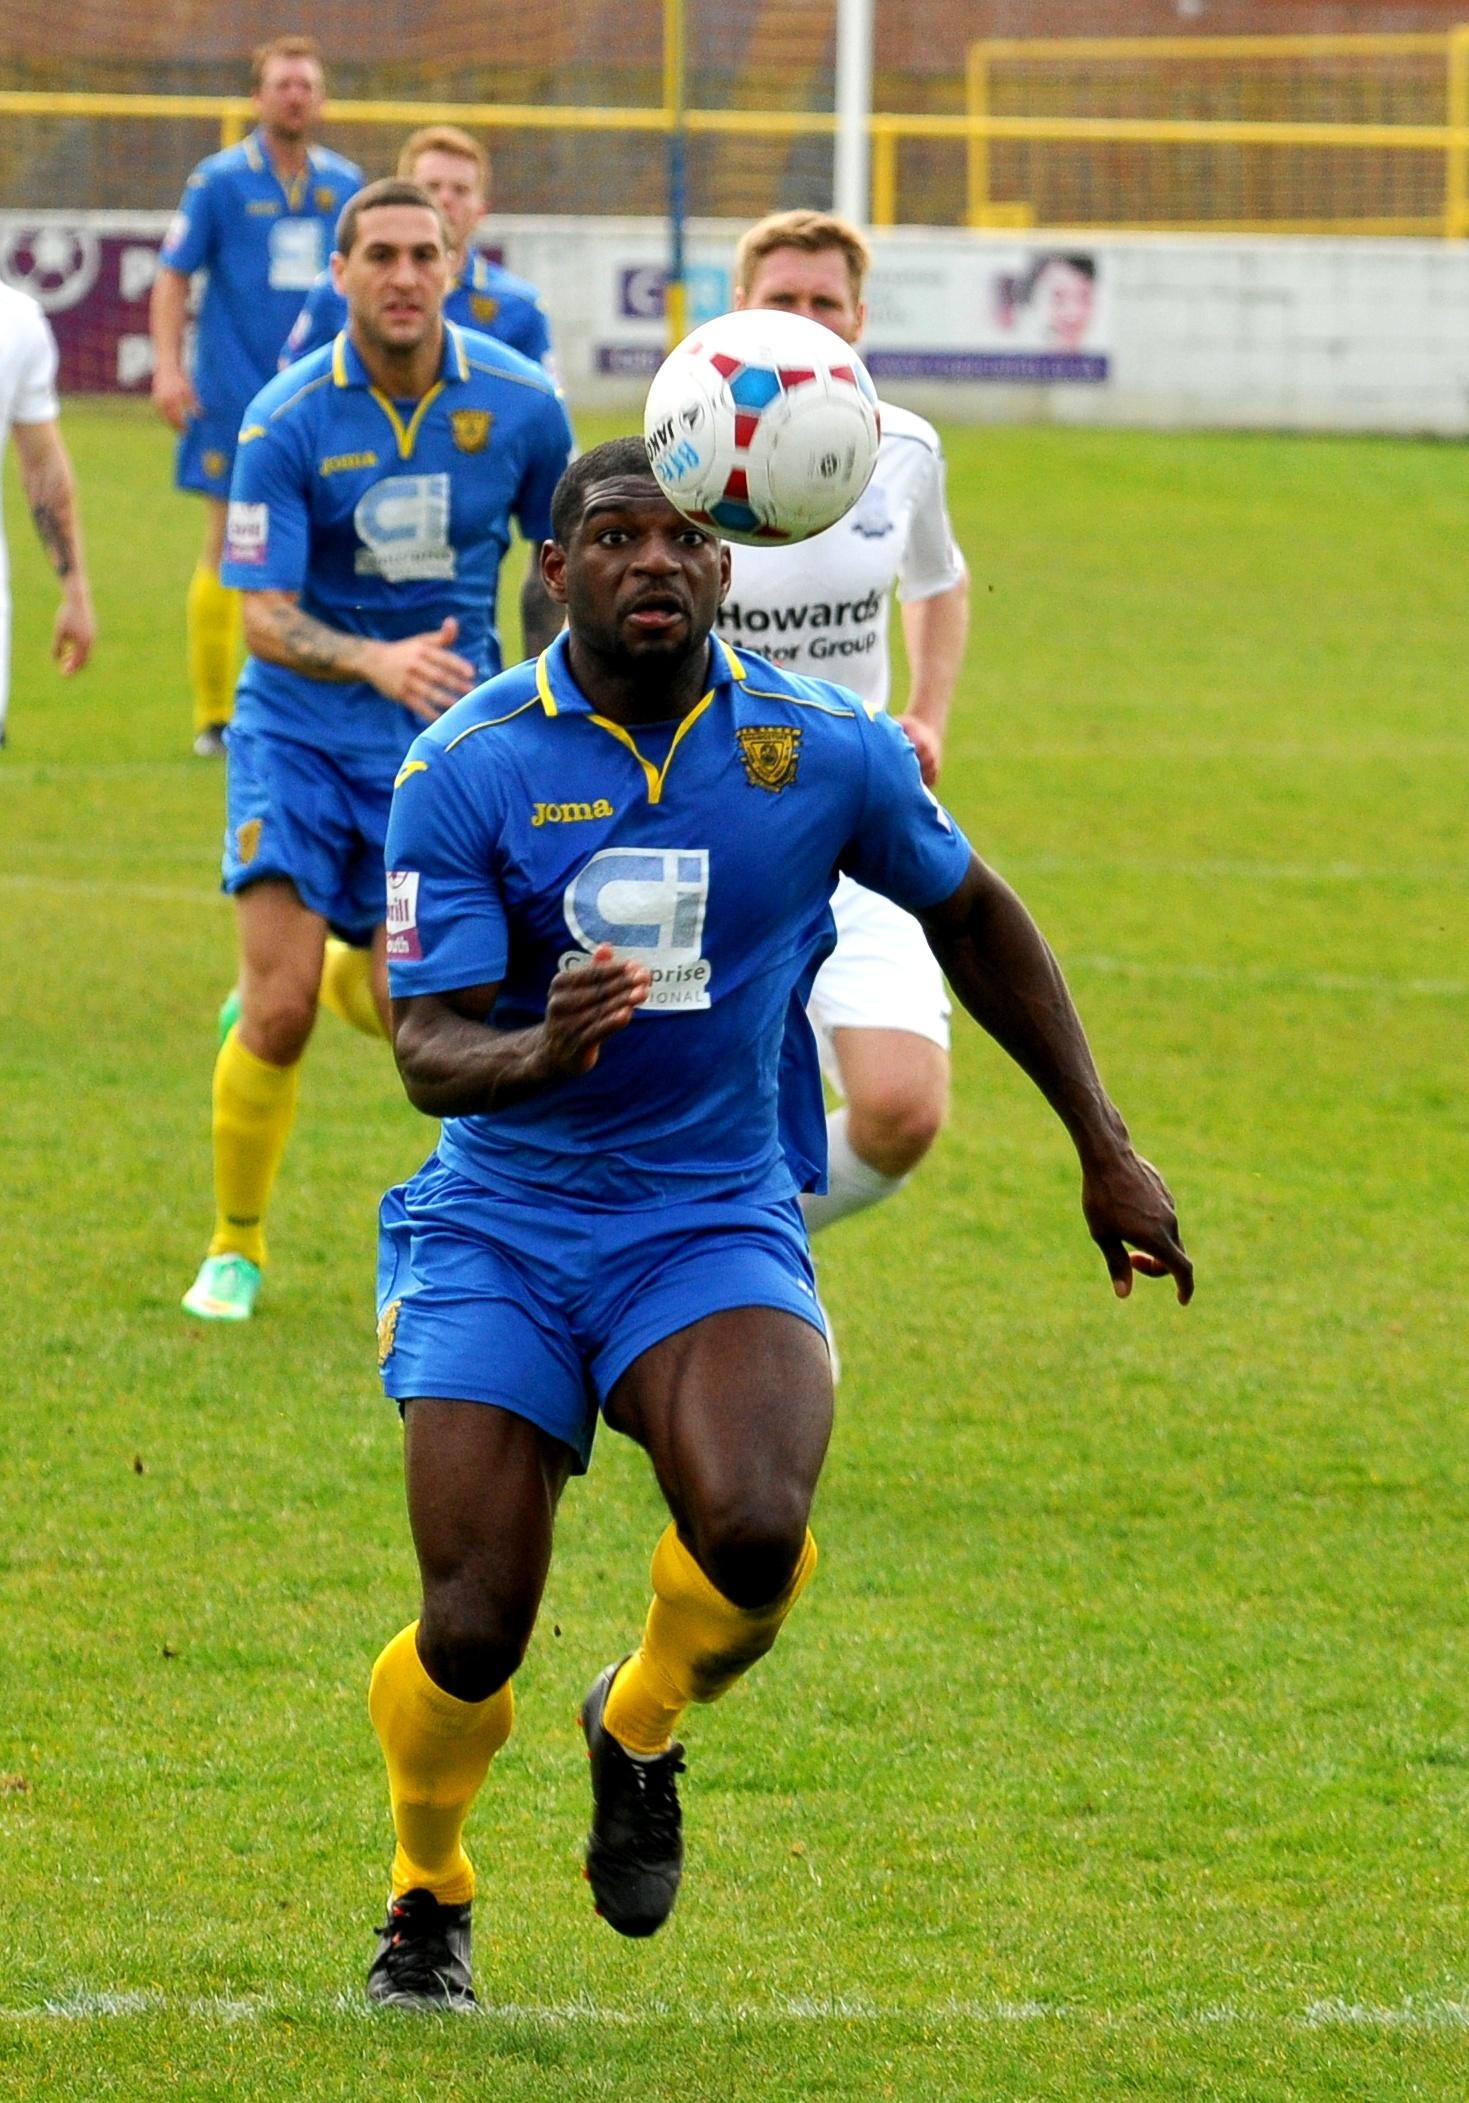 Nicholas Bignall was unable to convert Basingstoke's best chance of the match.